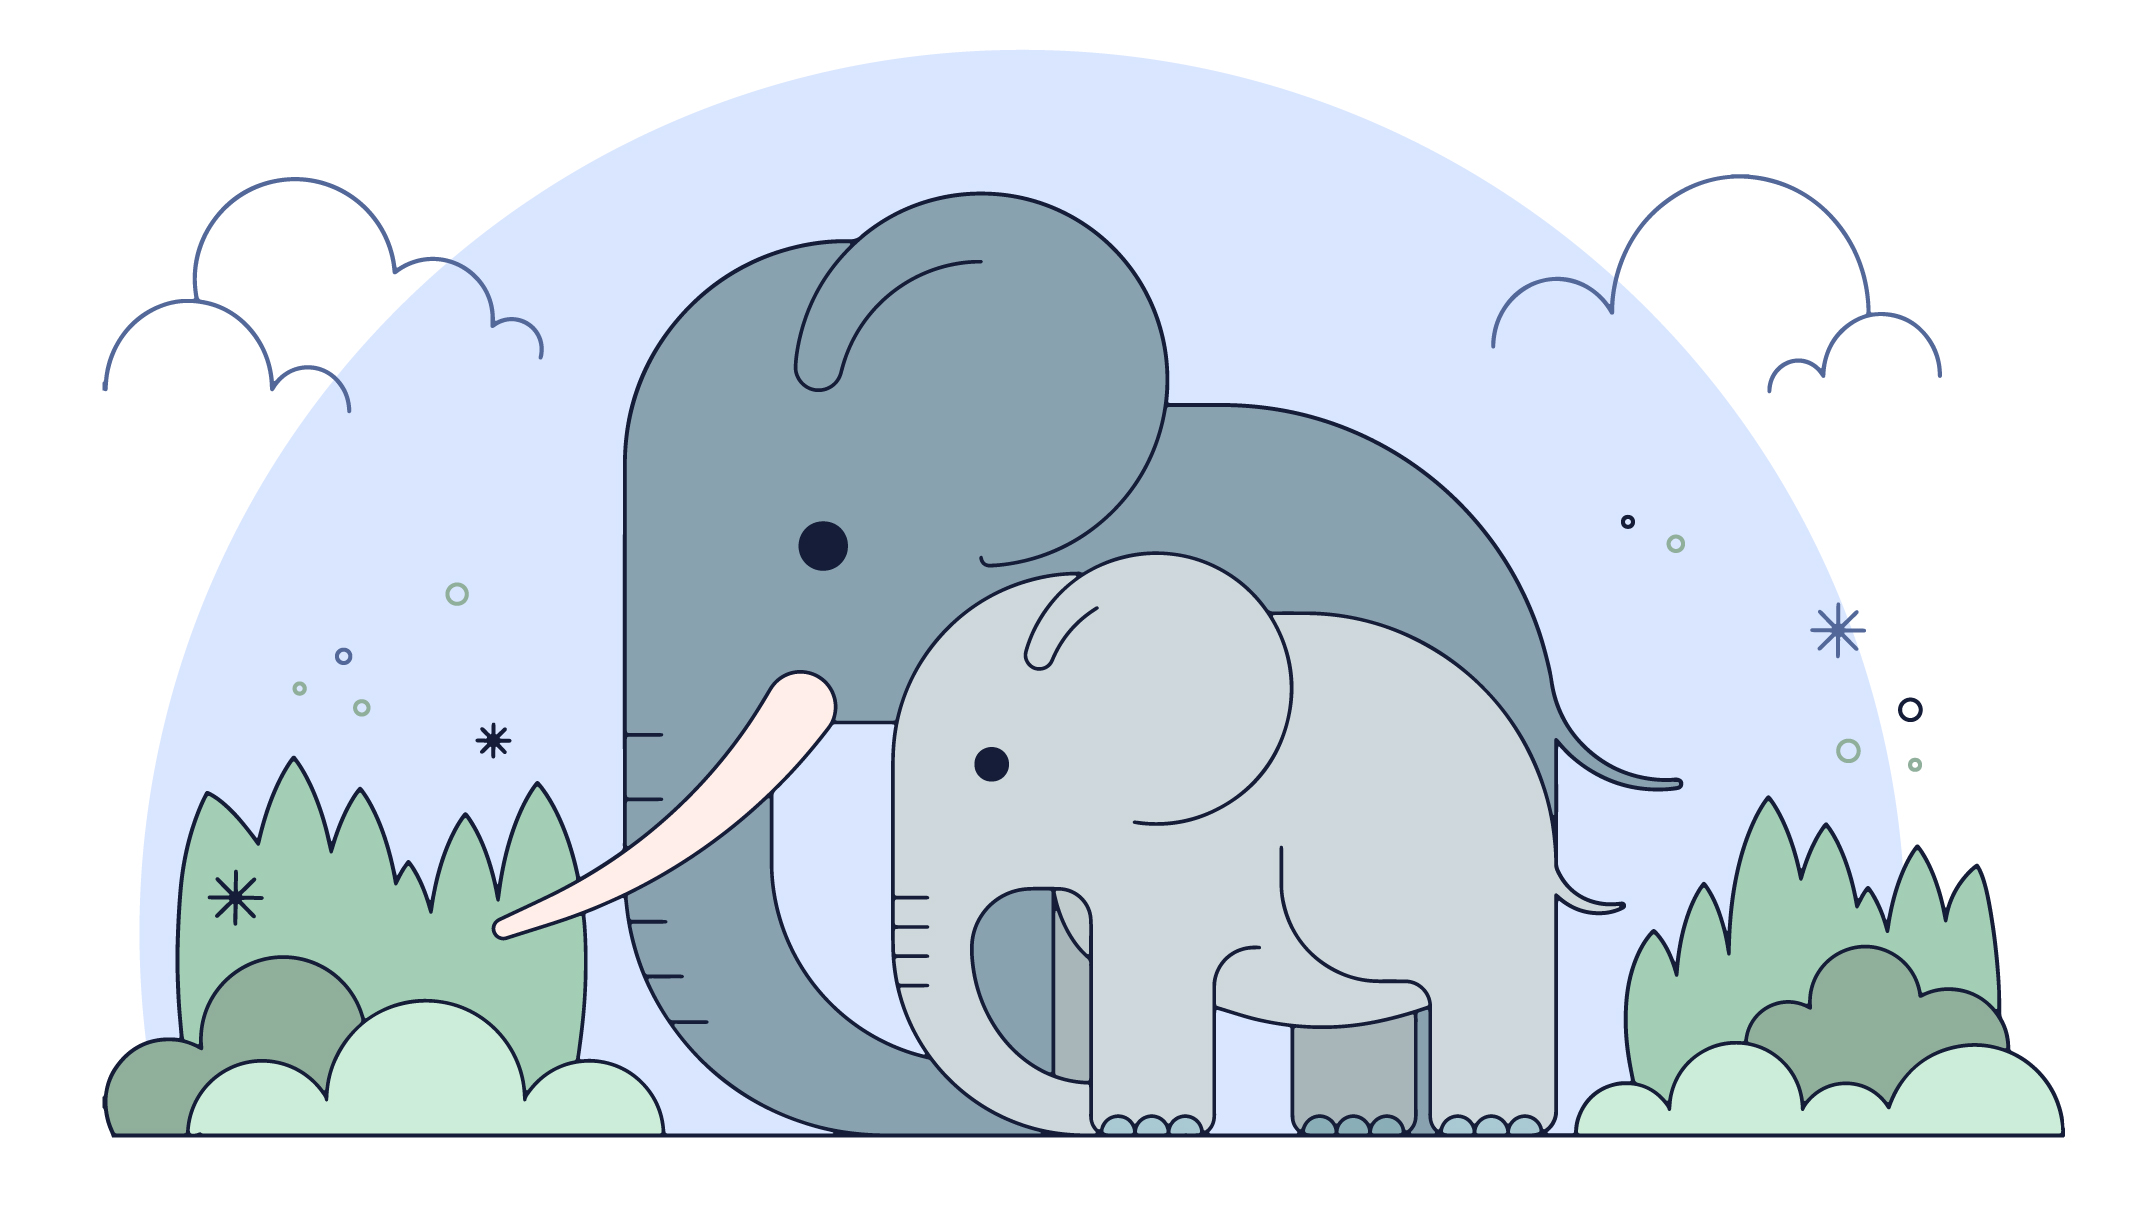 Elephant Family Free Vector Art - (48 Free Downloads)